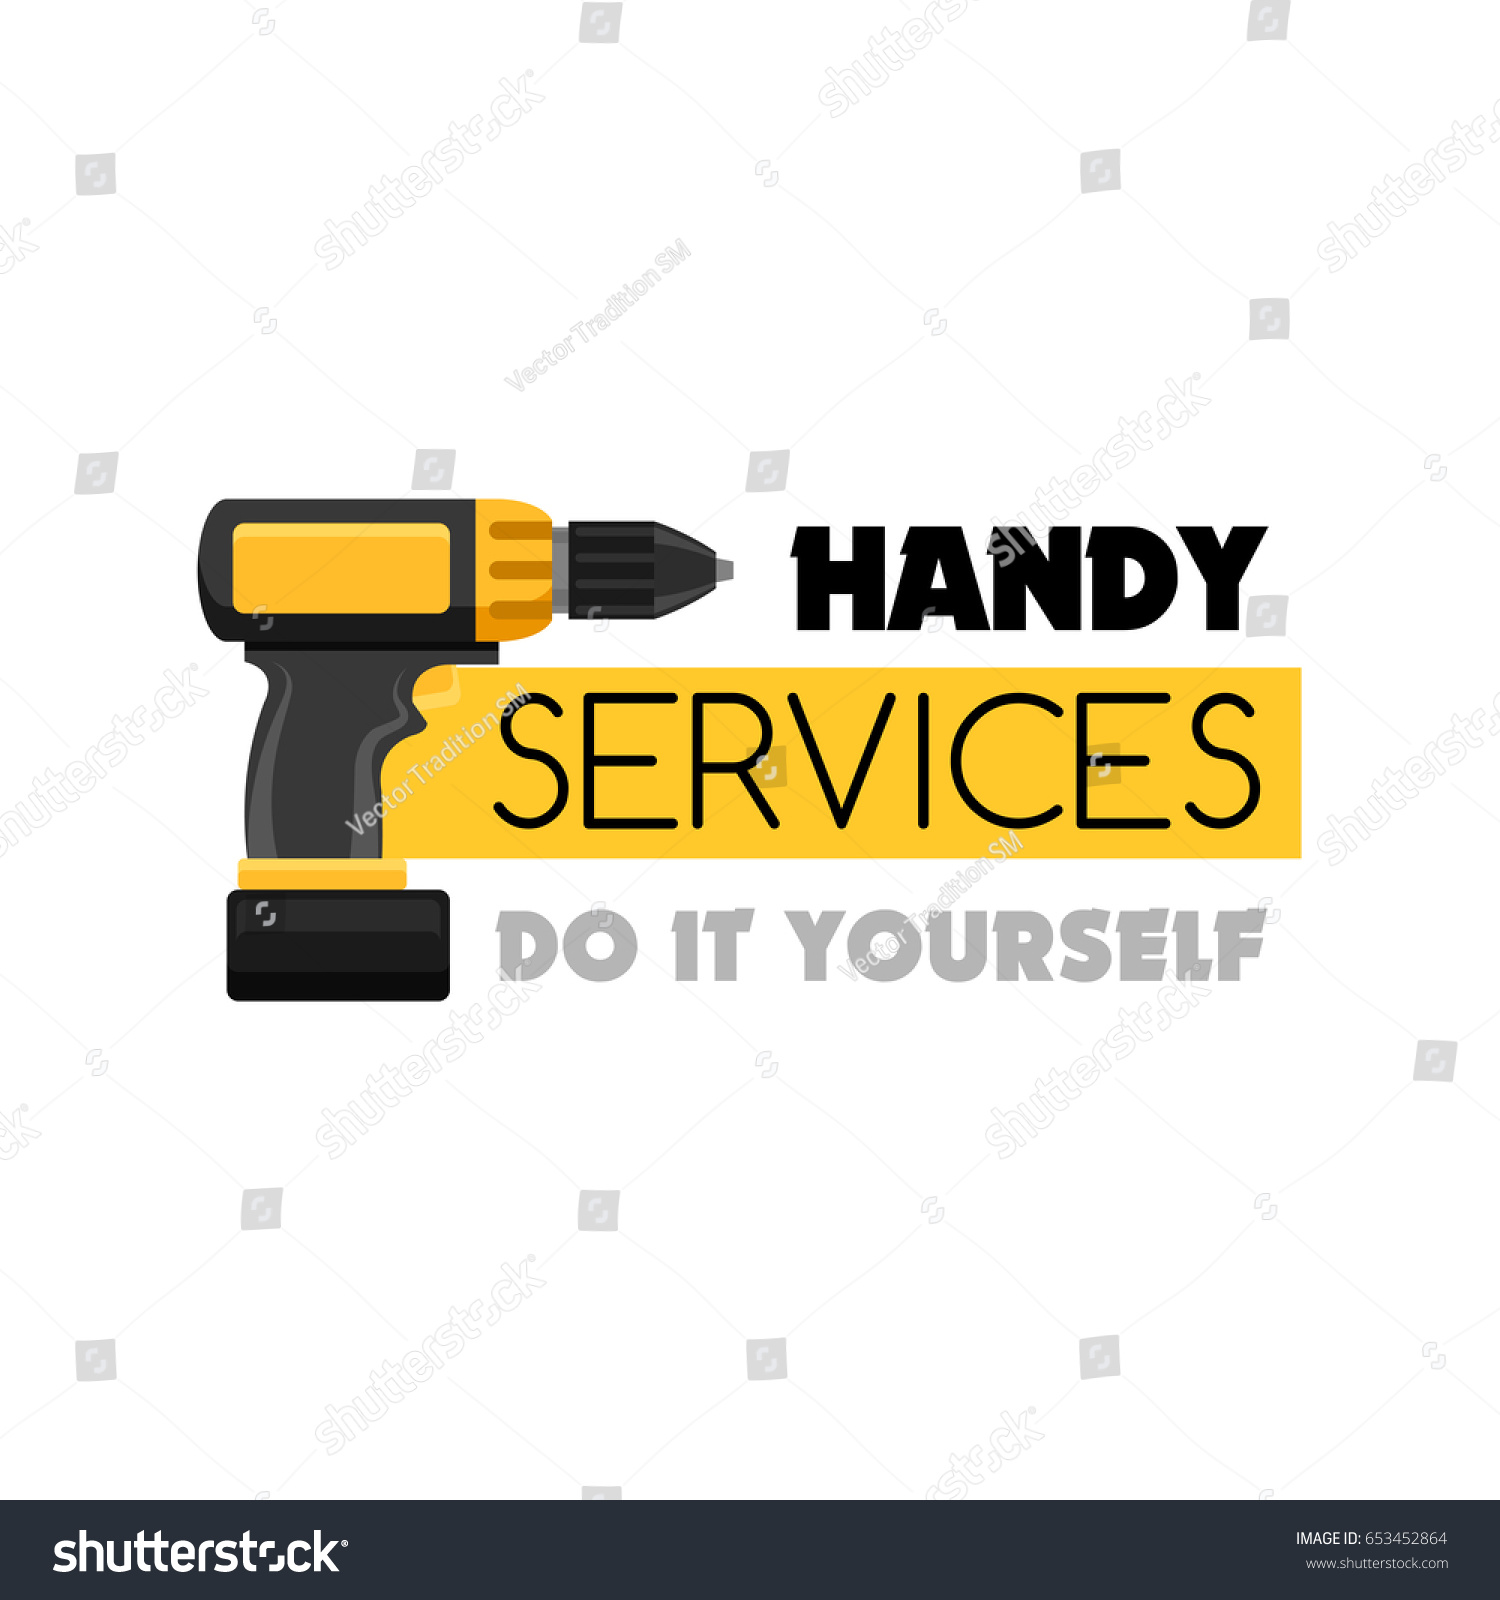 Do it yourself home renovation great do it yourself home for Easy do it yourself home improvements